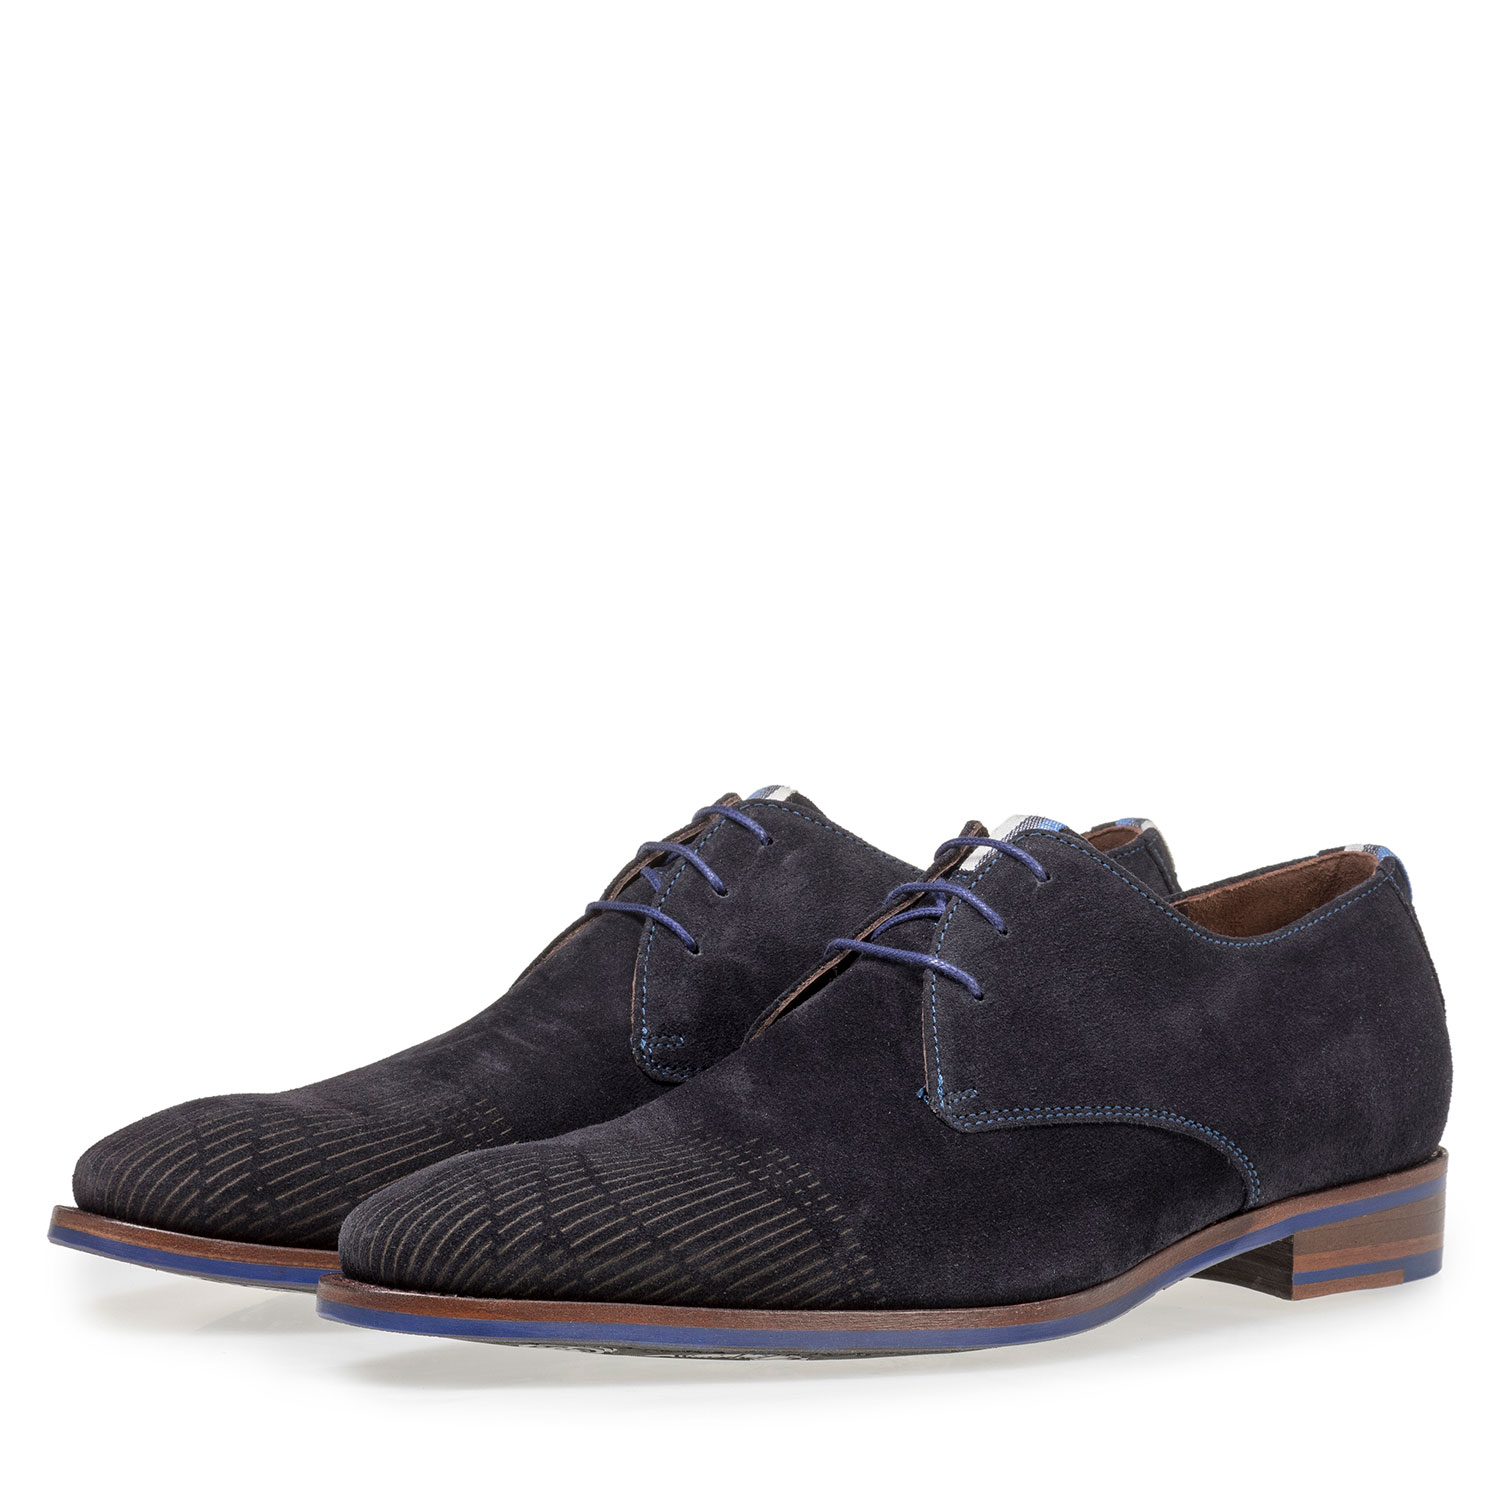 18276/05 - Dark blue suede leather lace shoe with laser print